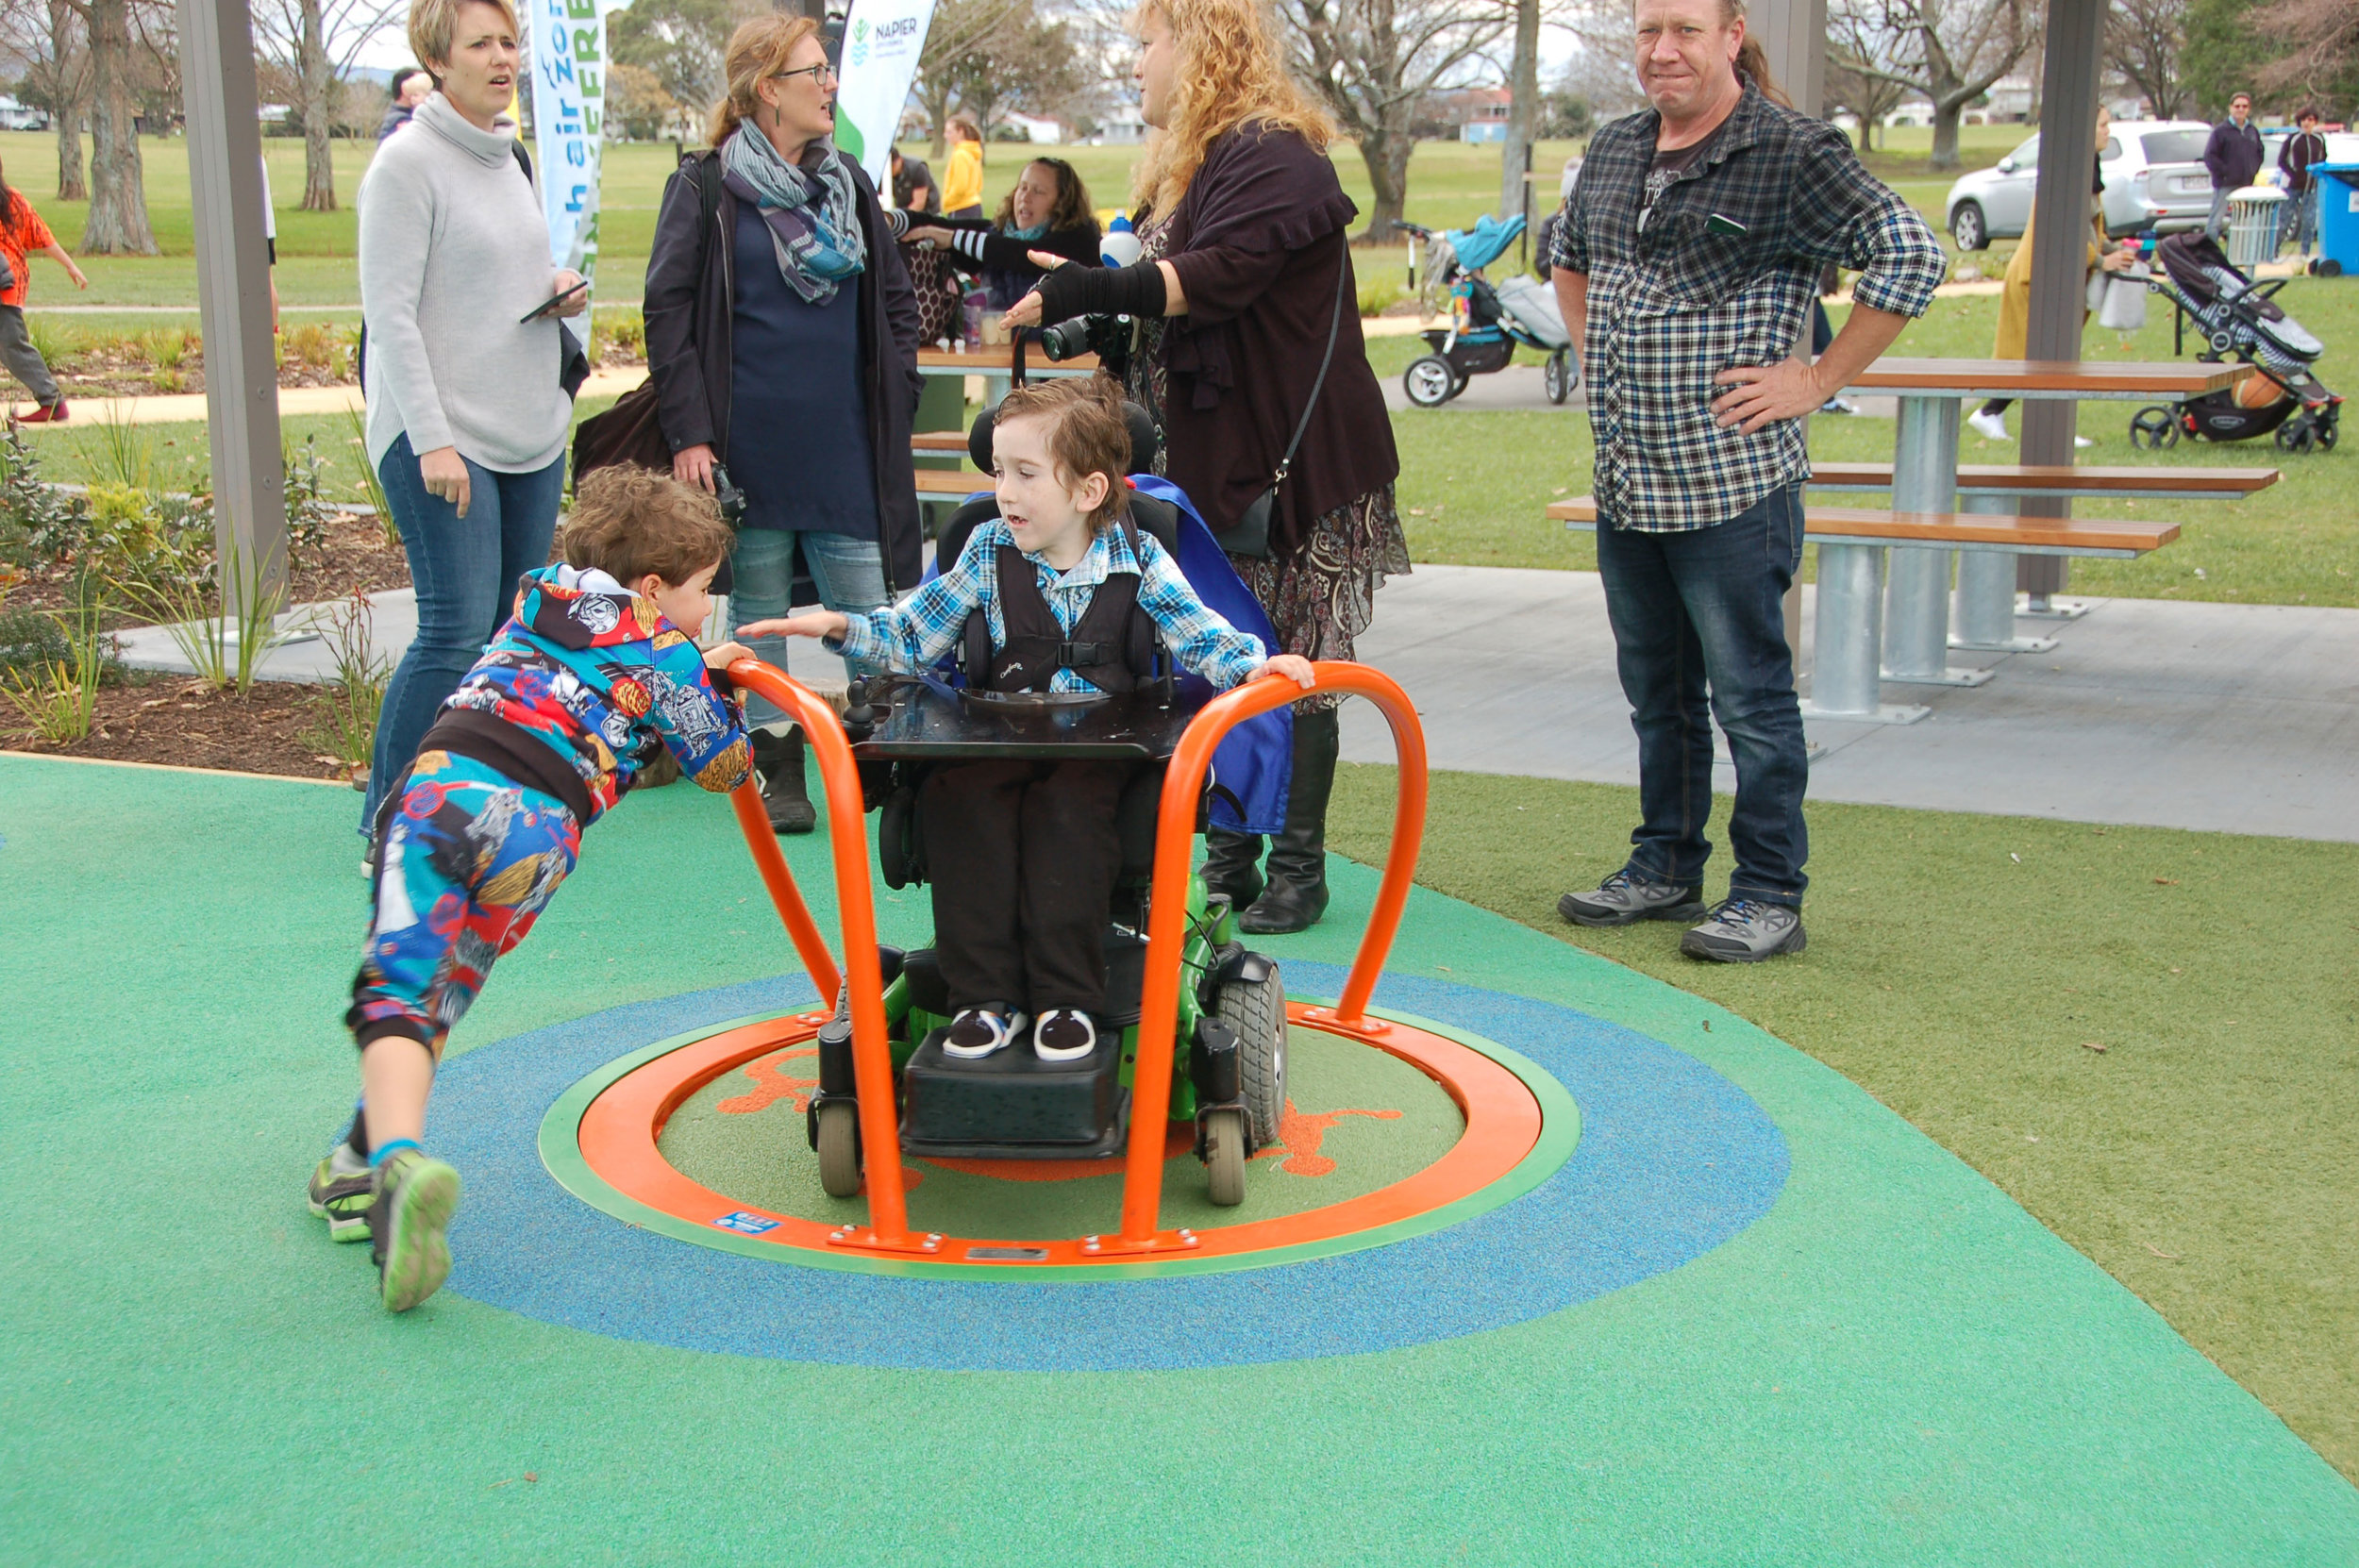 Providing children of all abilities the opportunity to spin, slide and swing was a central design driver for Anderson Park Playground.